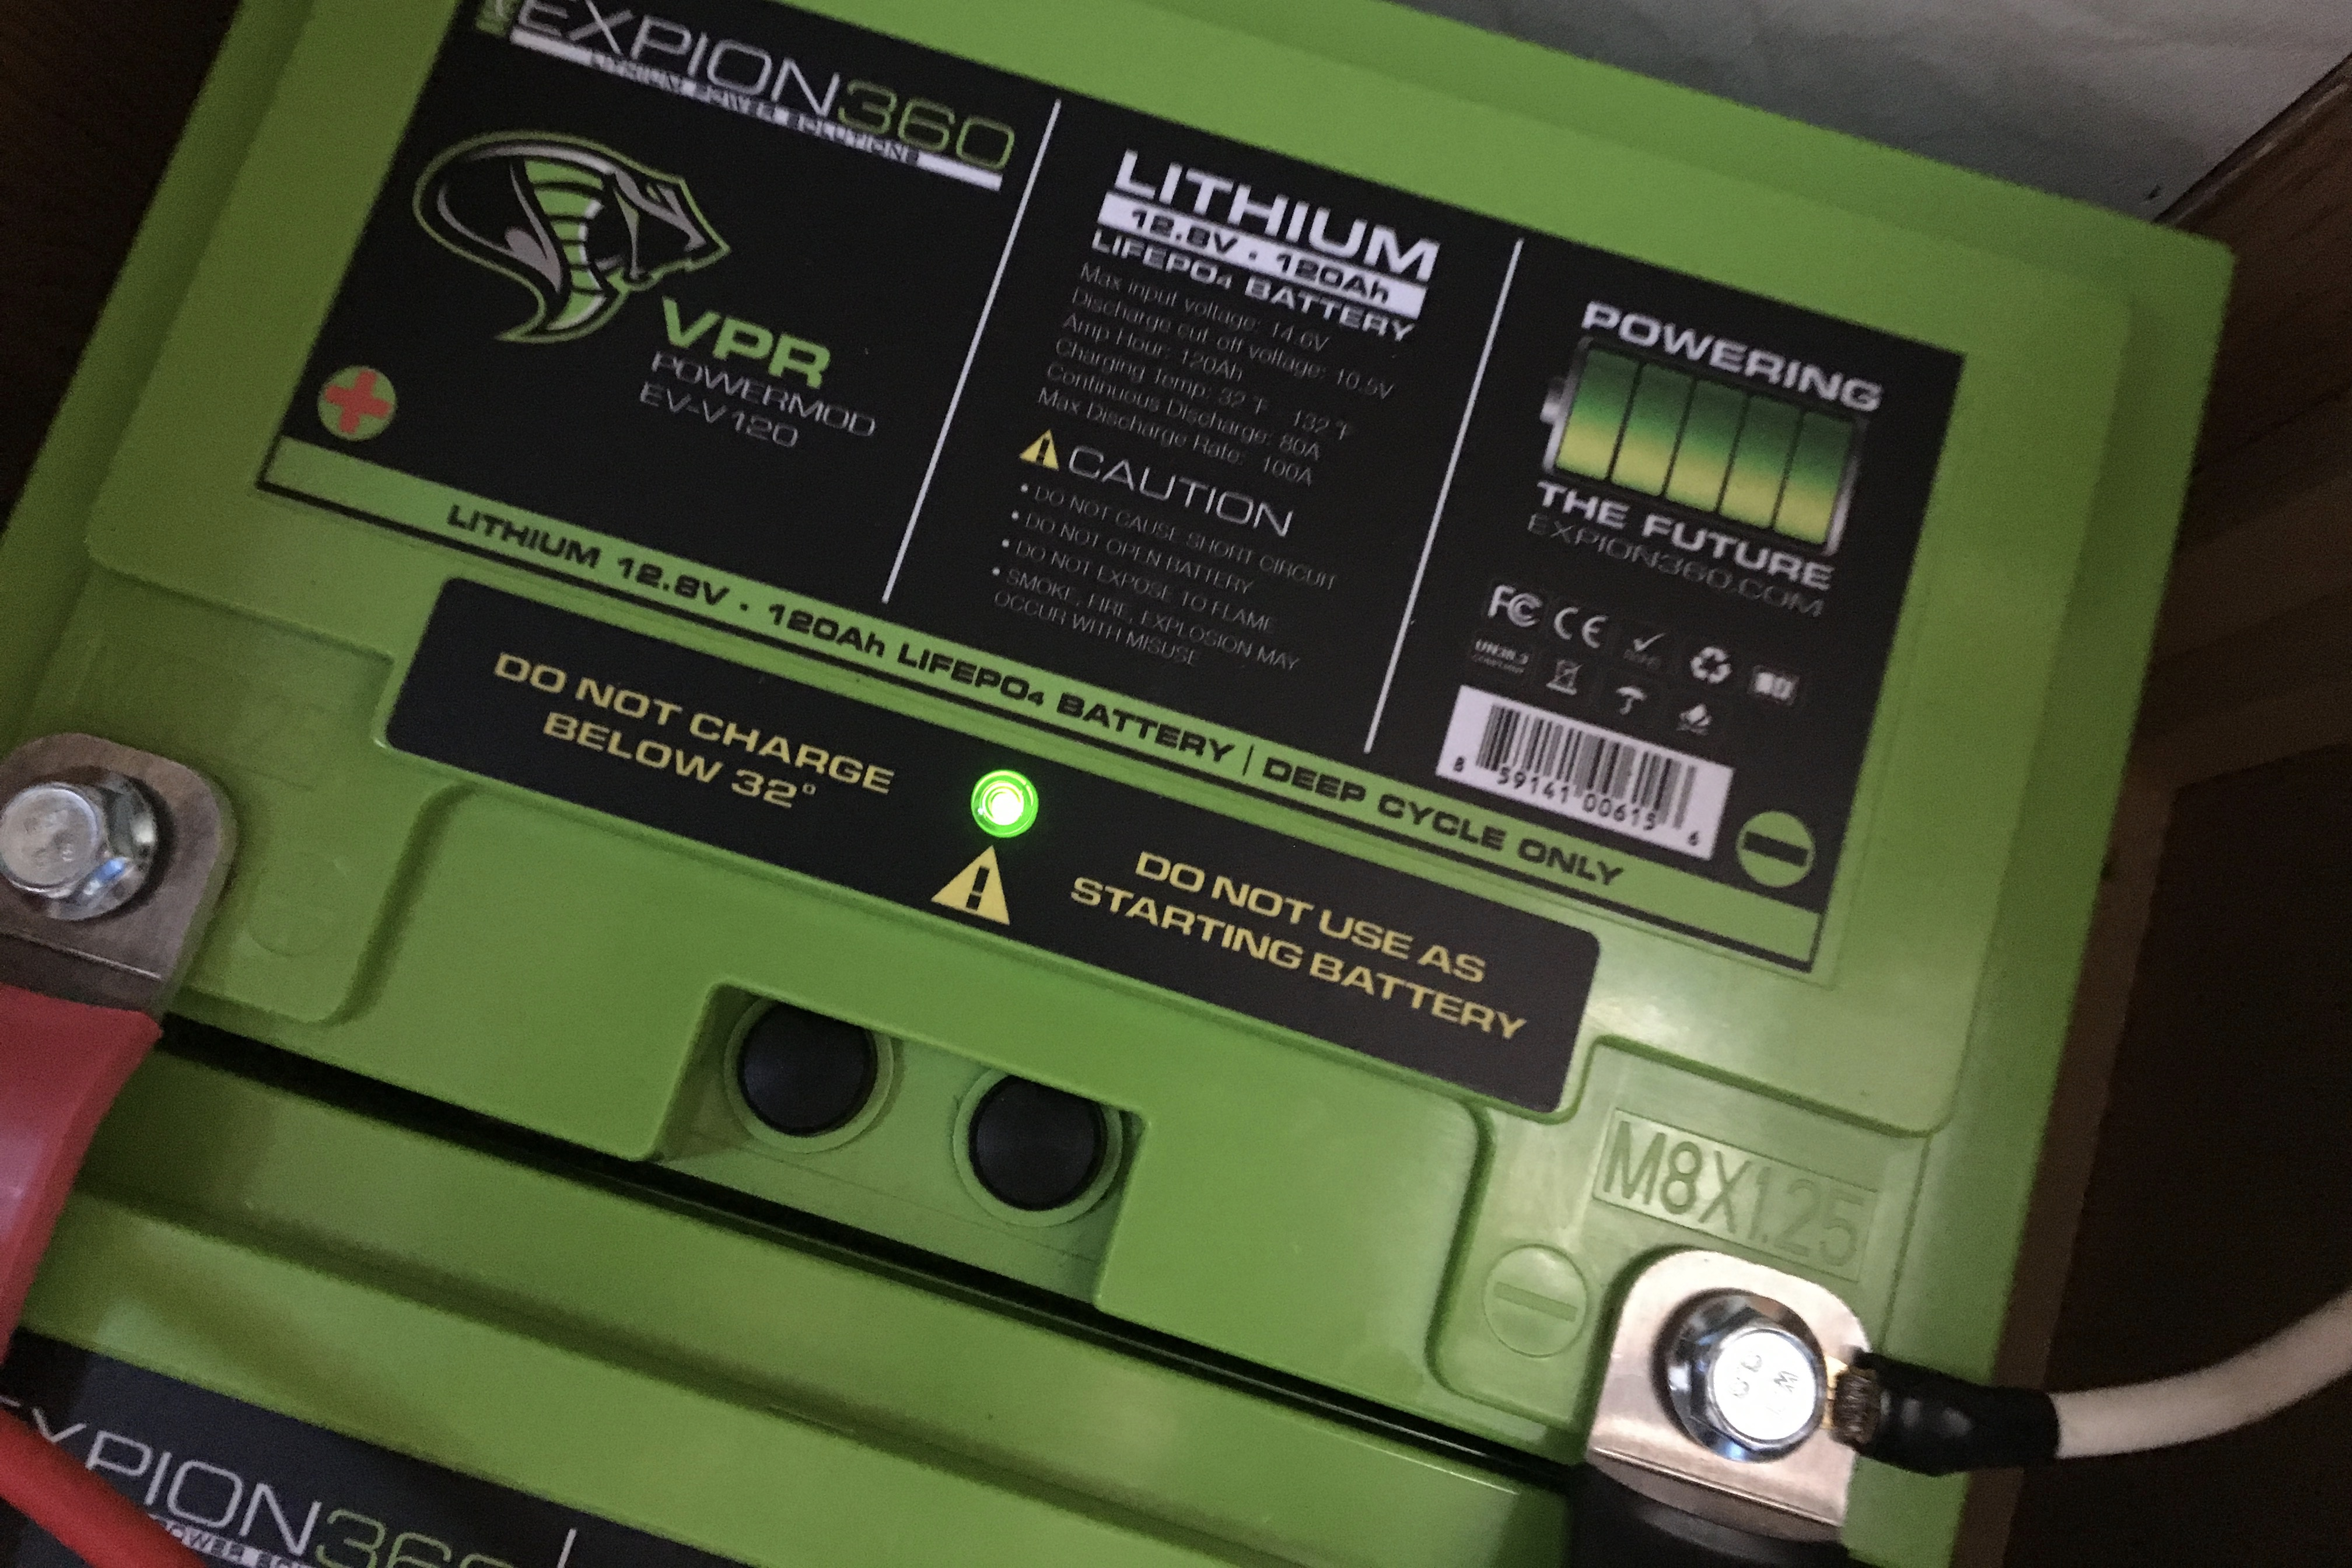 Review Of The Expion360 Vpr Powermod Lithium Rv Battery Truck Camper Adventure